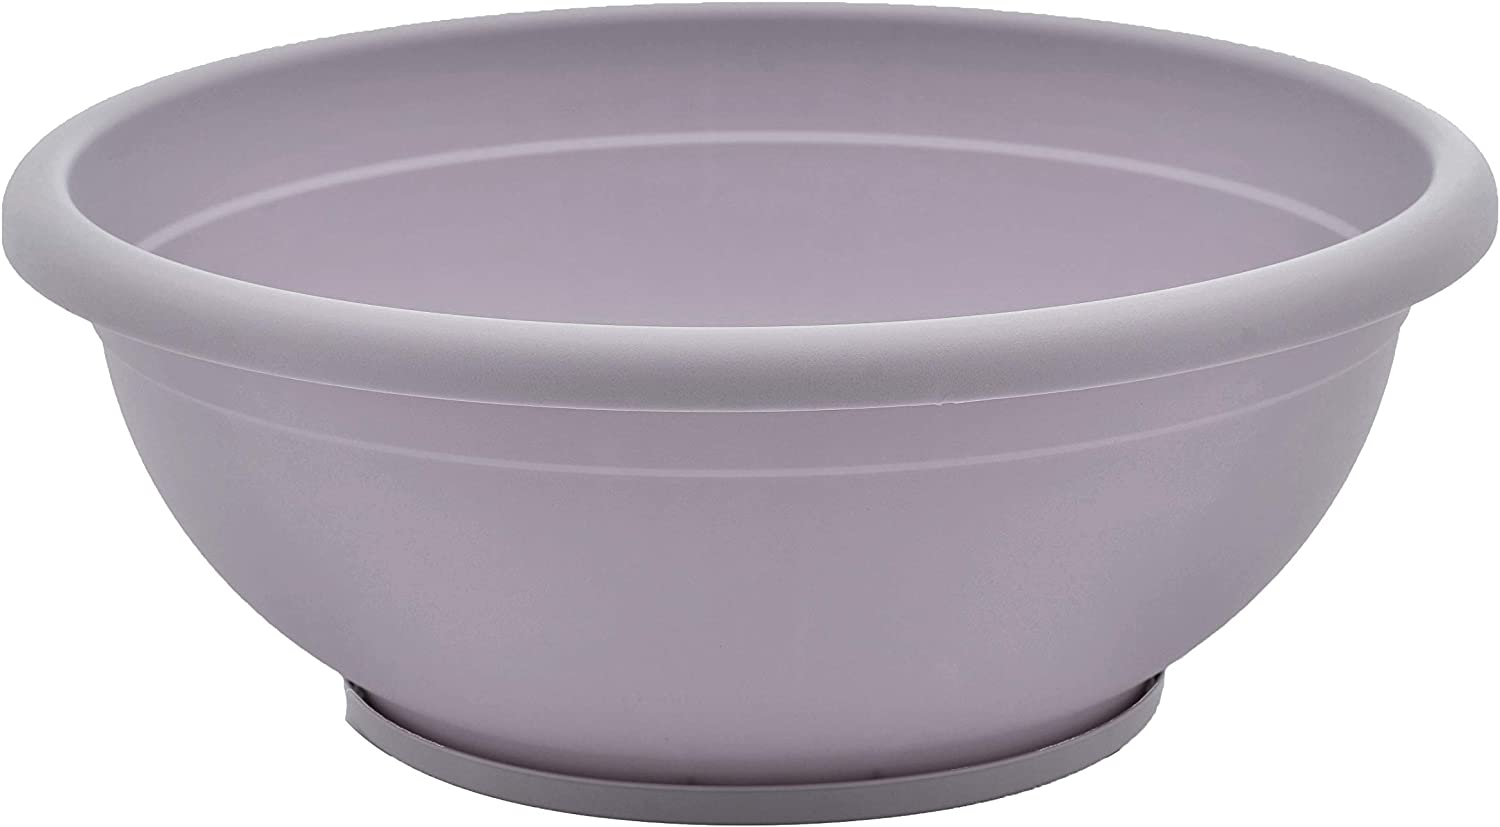 TABOR TOOLS VEN306 Plastic Planter Bowl, Garden Bowl with Attached Drainage Tray, for Indoor and Outdoor Use, Round Ø 12 Inch (Color:Mauve)